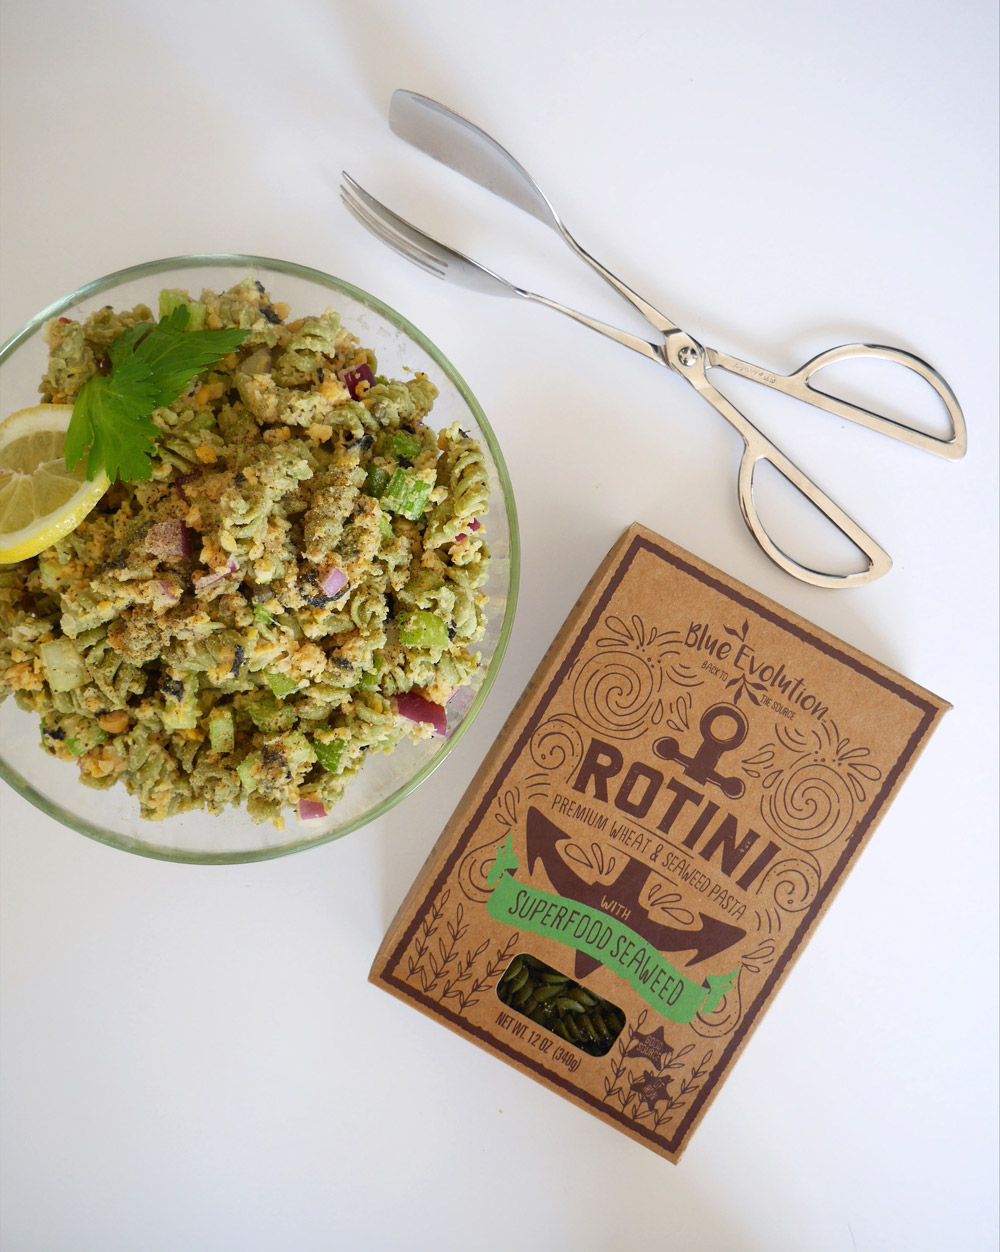 Blue Evolution Chickpea Tuna Pasta Salad with Rotini Seaweed Pasta